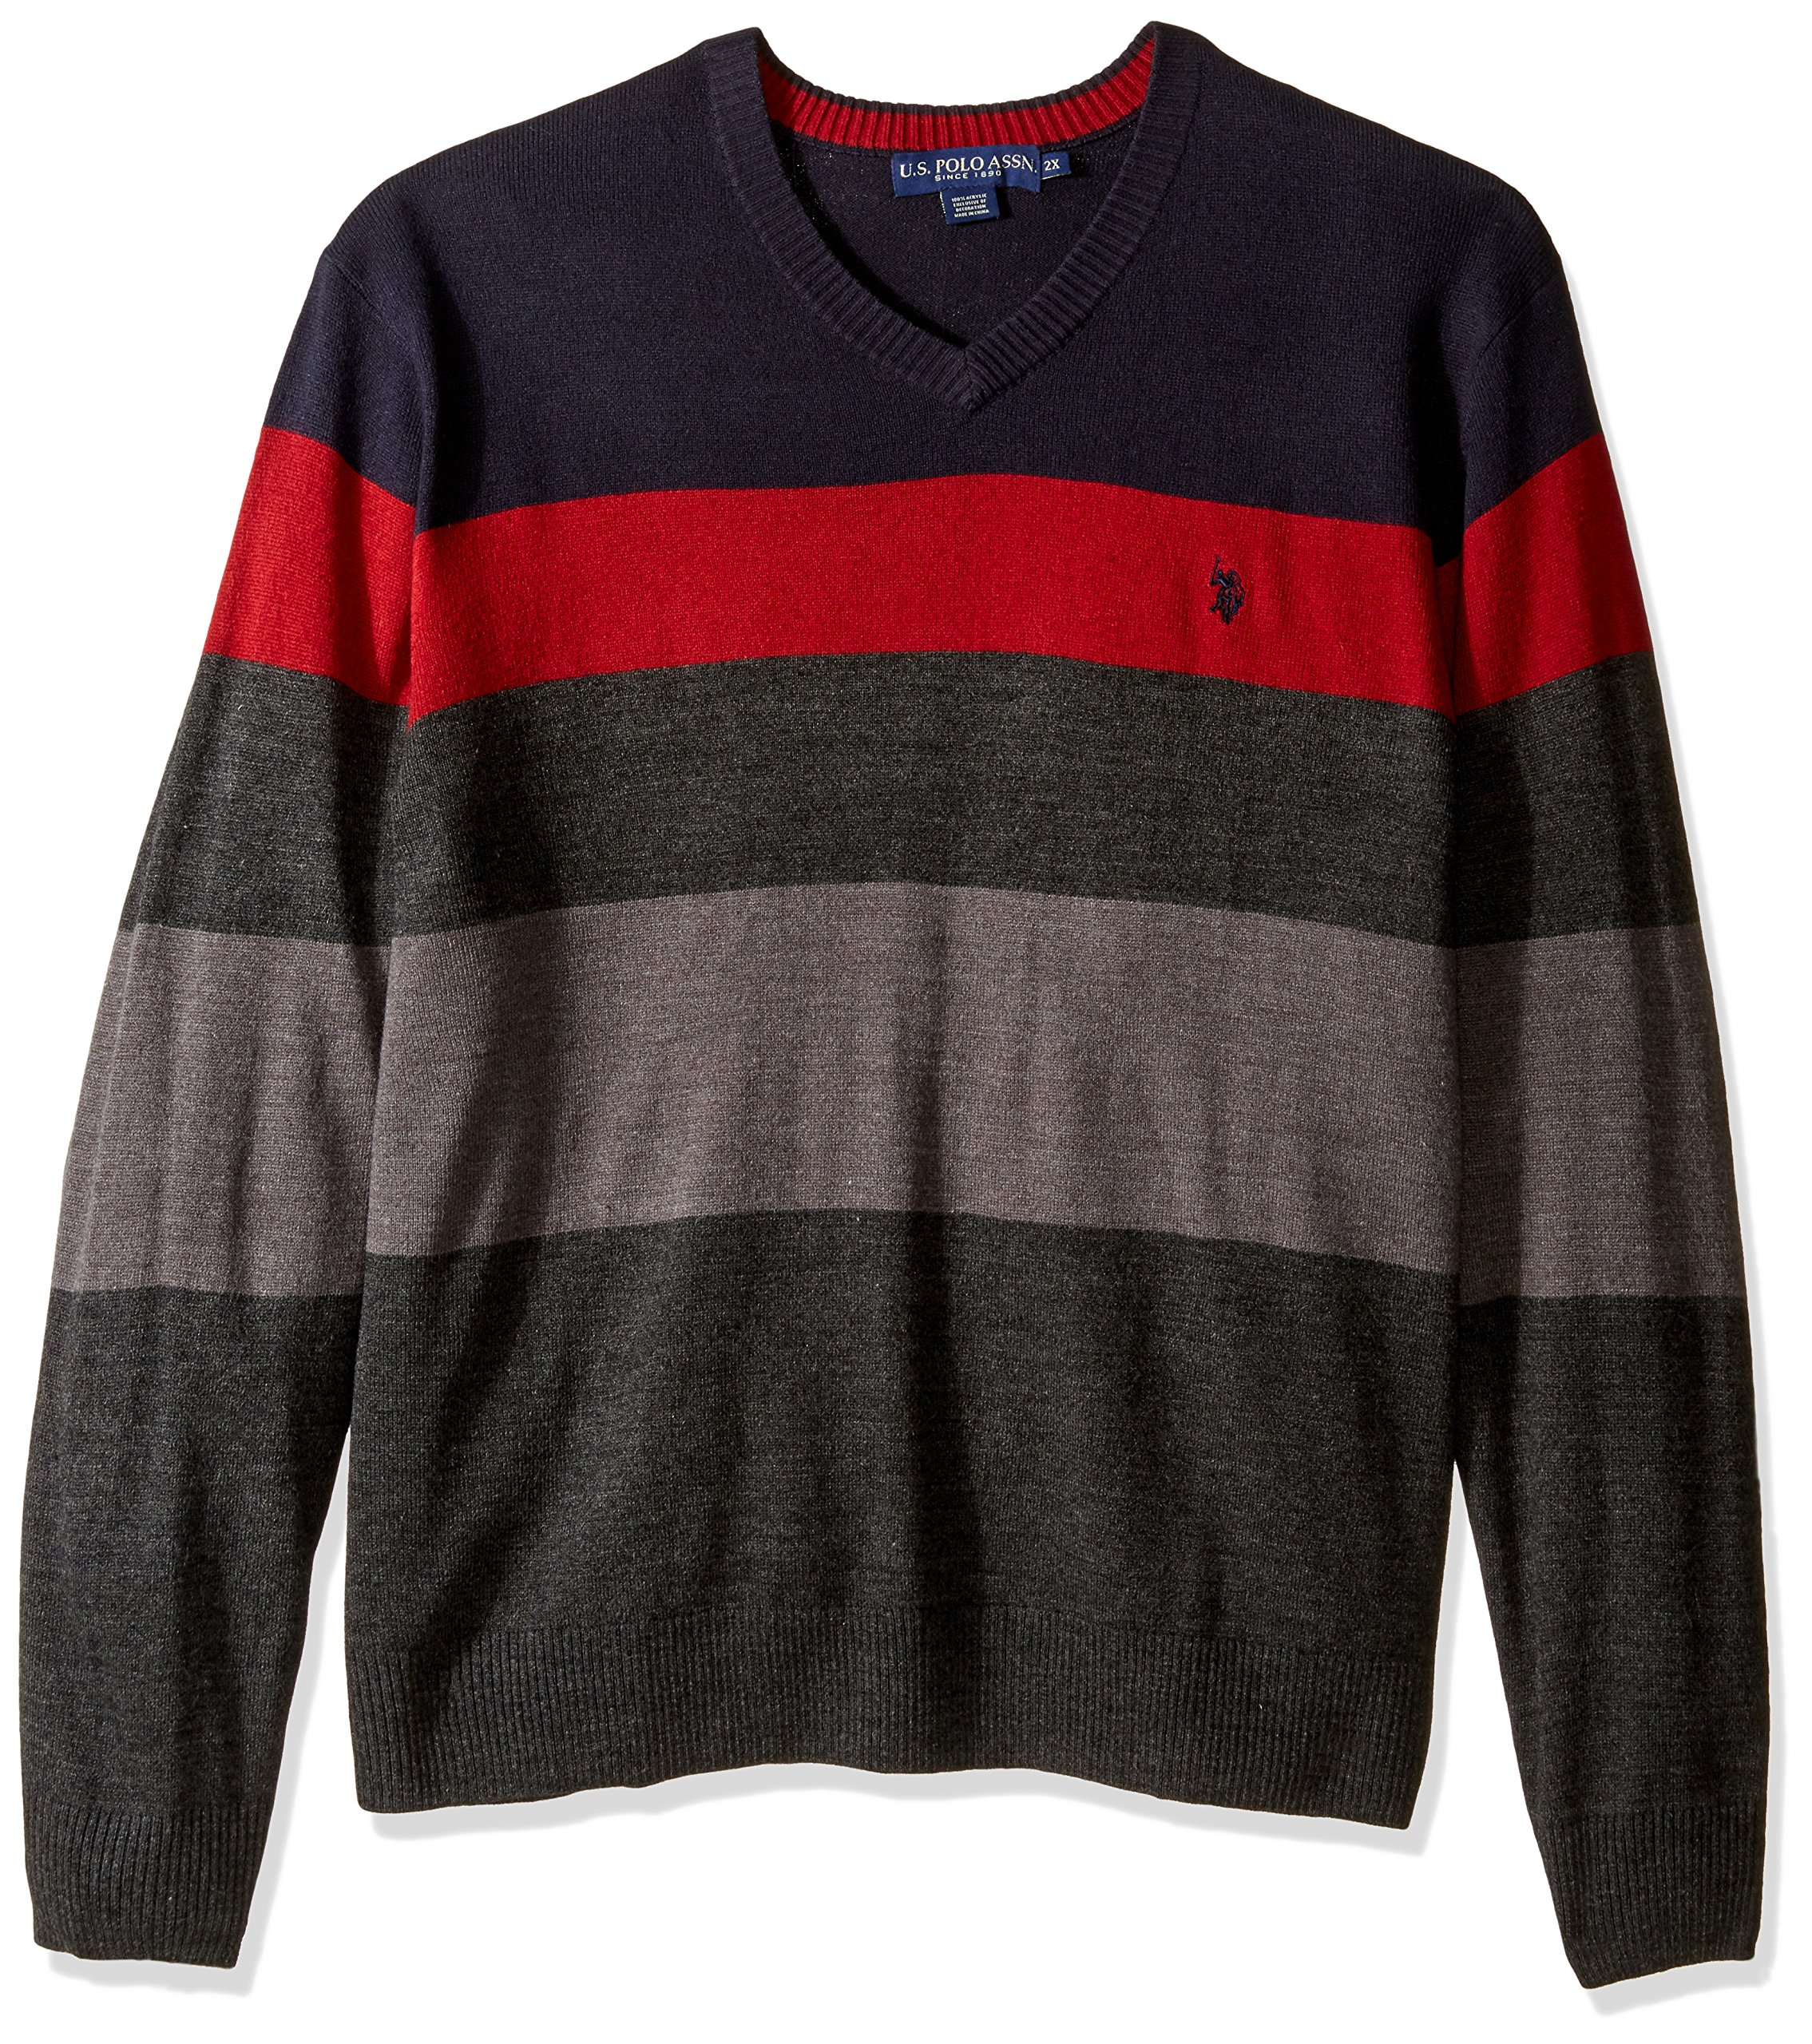 U.S. Polo Assn. Men's Big-Tall Striped V-Neck Sweater, Navy, 2X by U.S. Polo Assn. (Image #1)